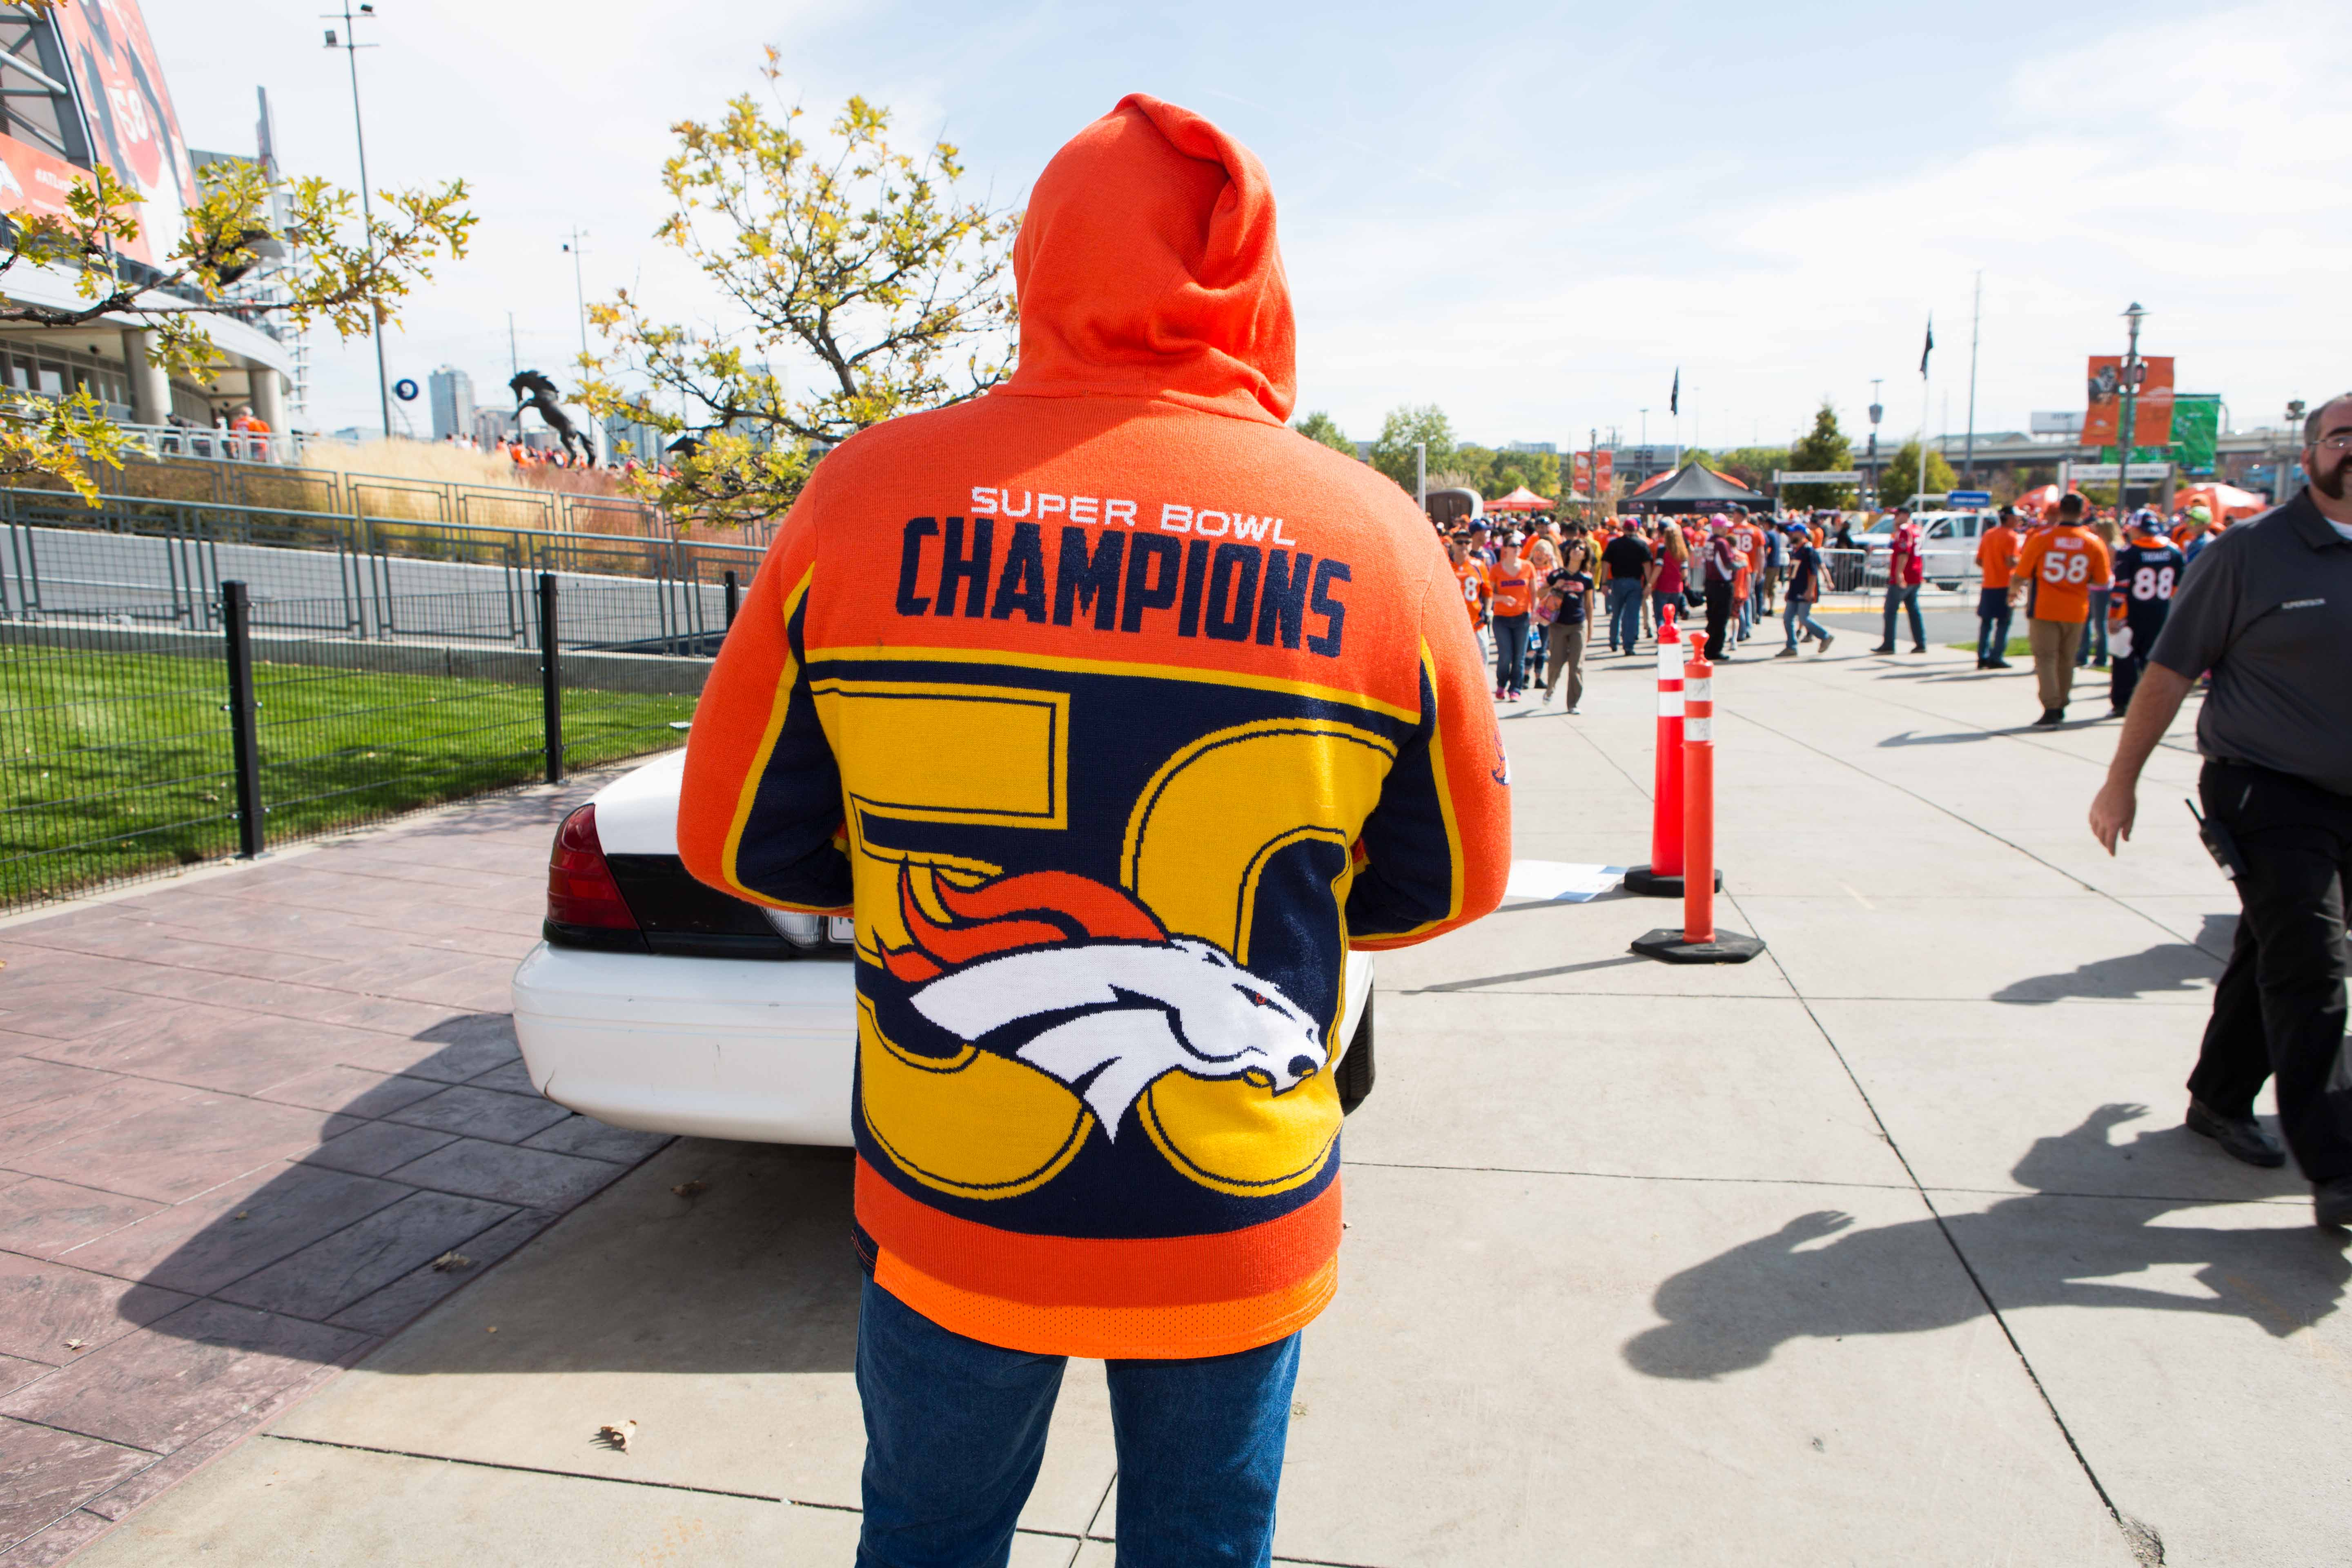 It might have been a little hot (game temps were around 80 degrees) but this Super Bowl sweater turned heads.